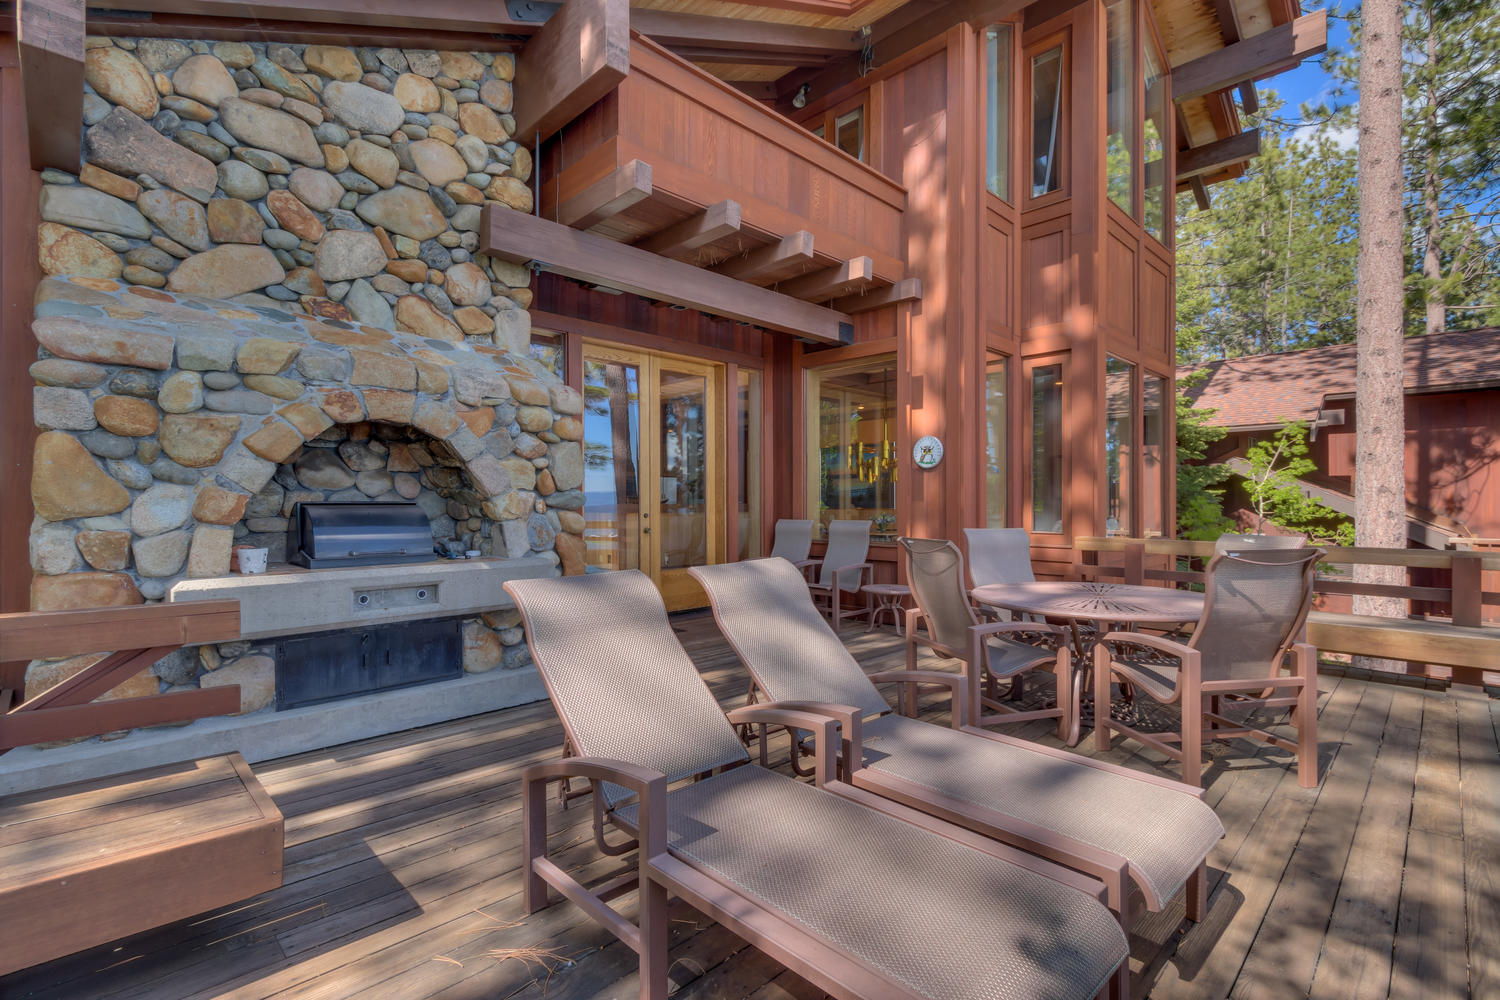 Outdoor fireplace at Whispering pines Tahoe City rental